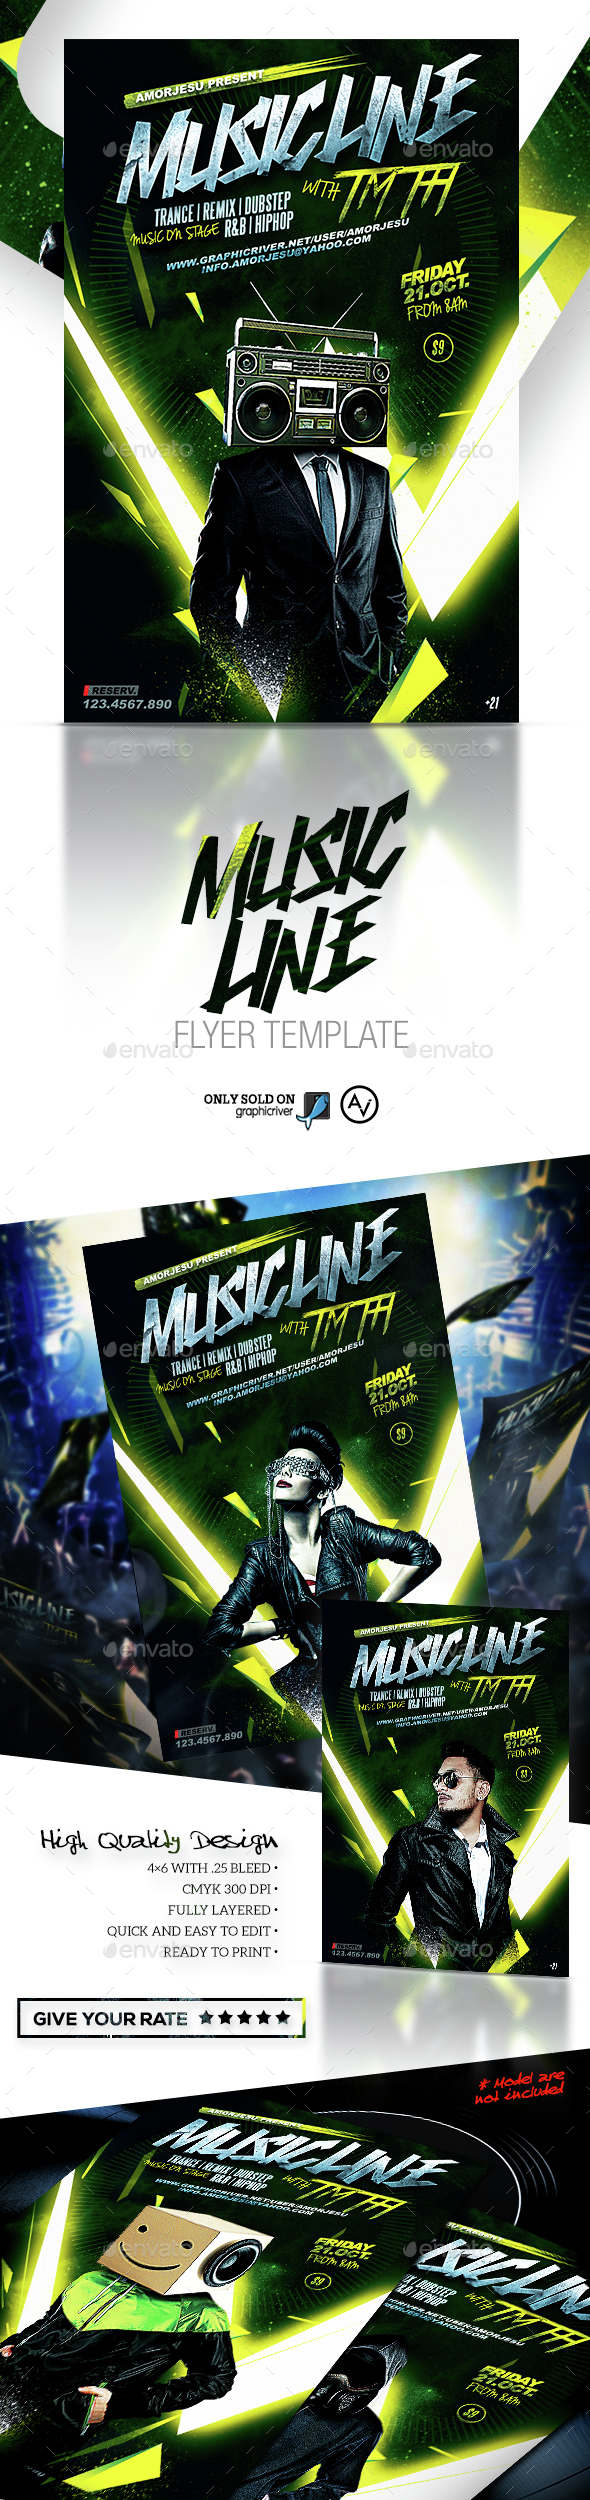 Music Line Flyer Template V1 - Clubs & Parties Events